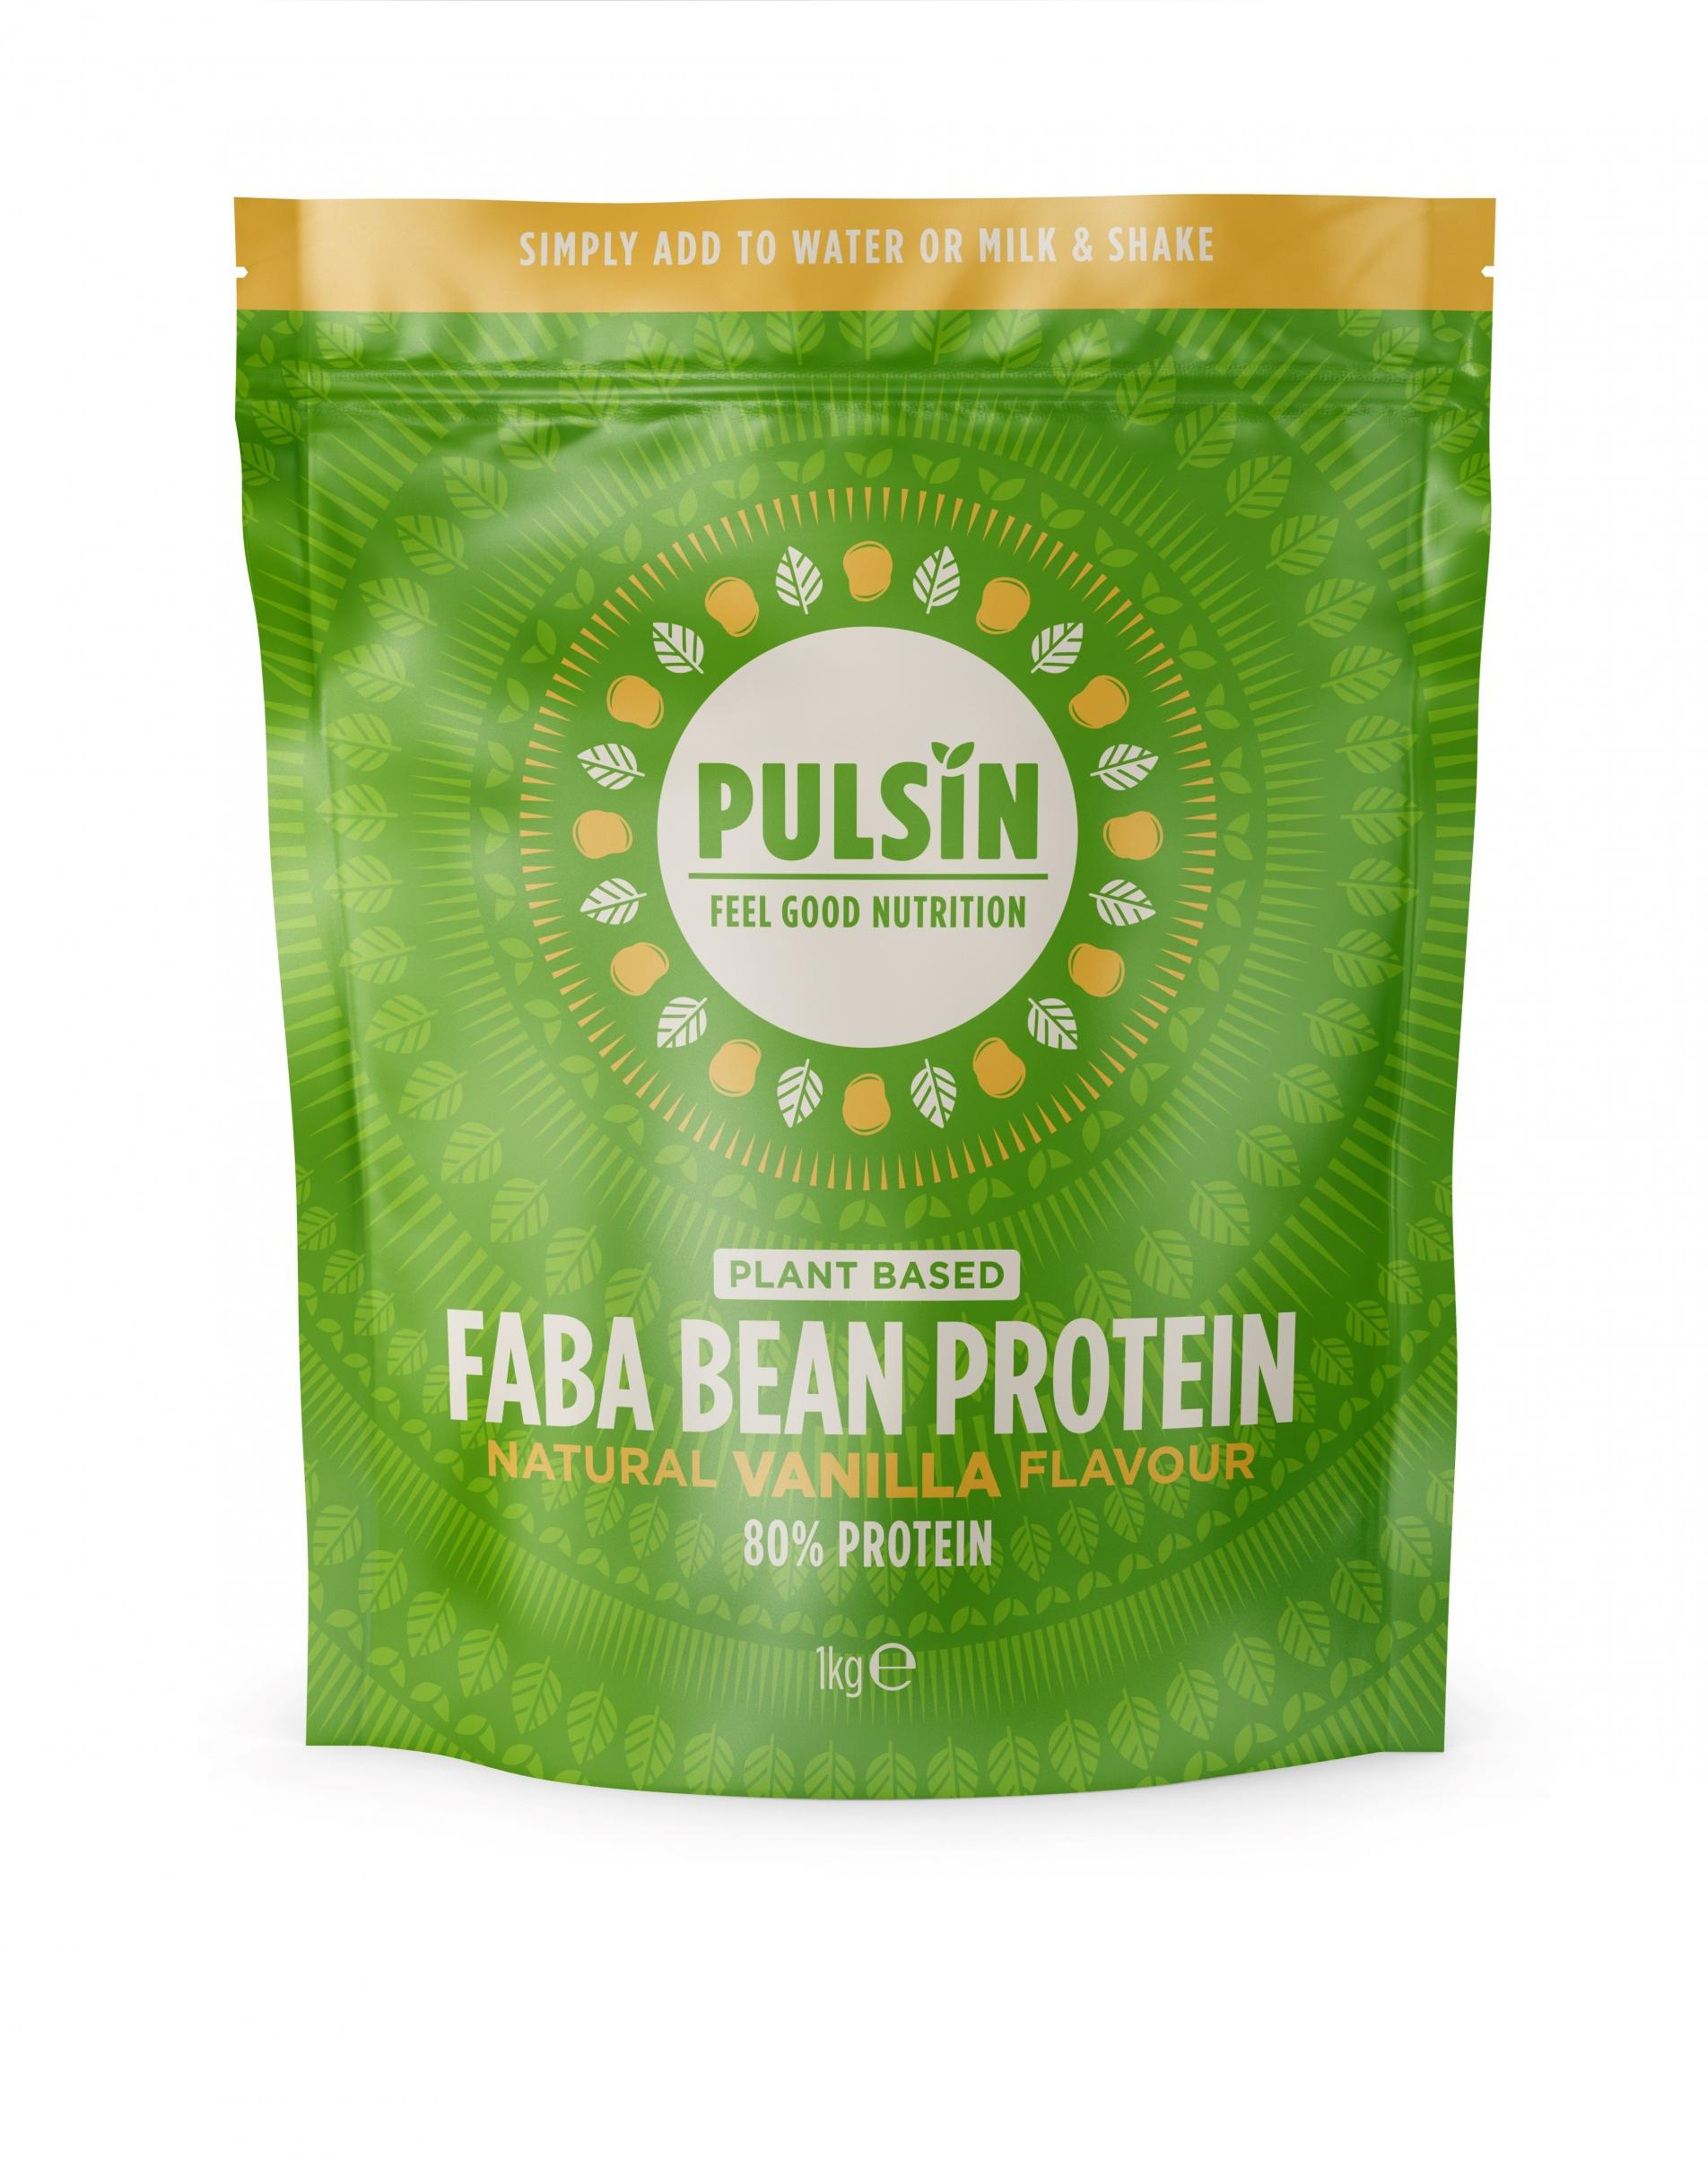 Faba Bean Protein Natural Vanilla Flavour (Plant Based) 1kg